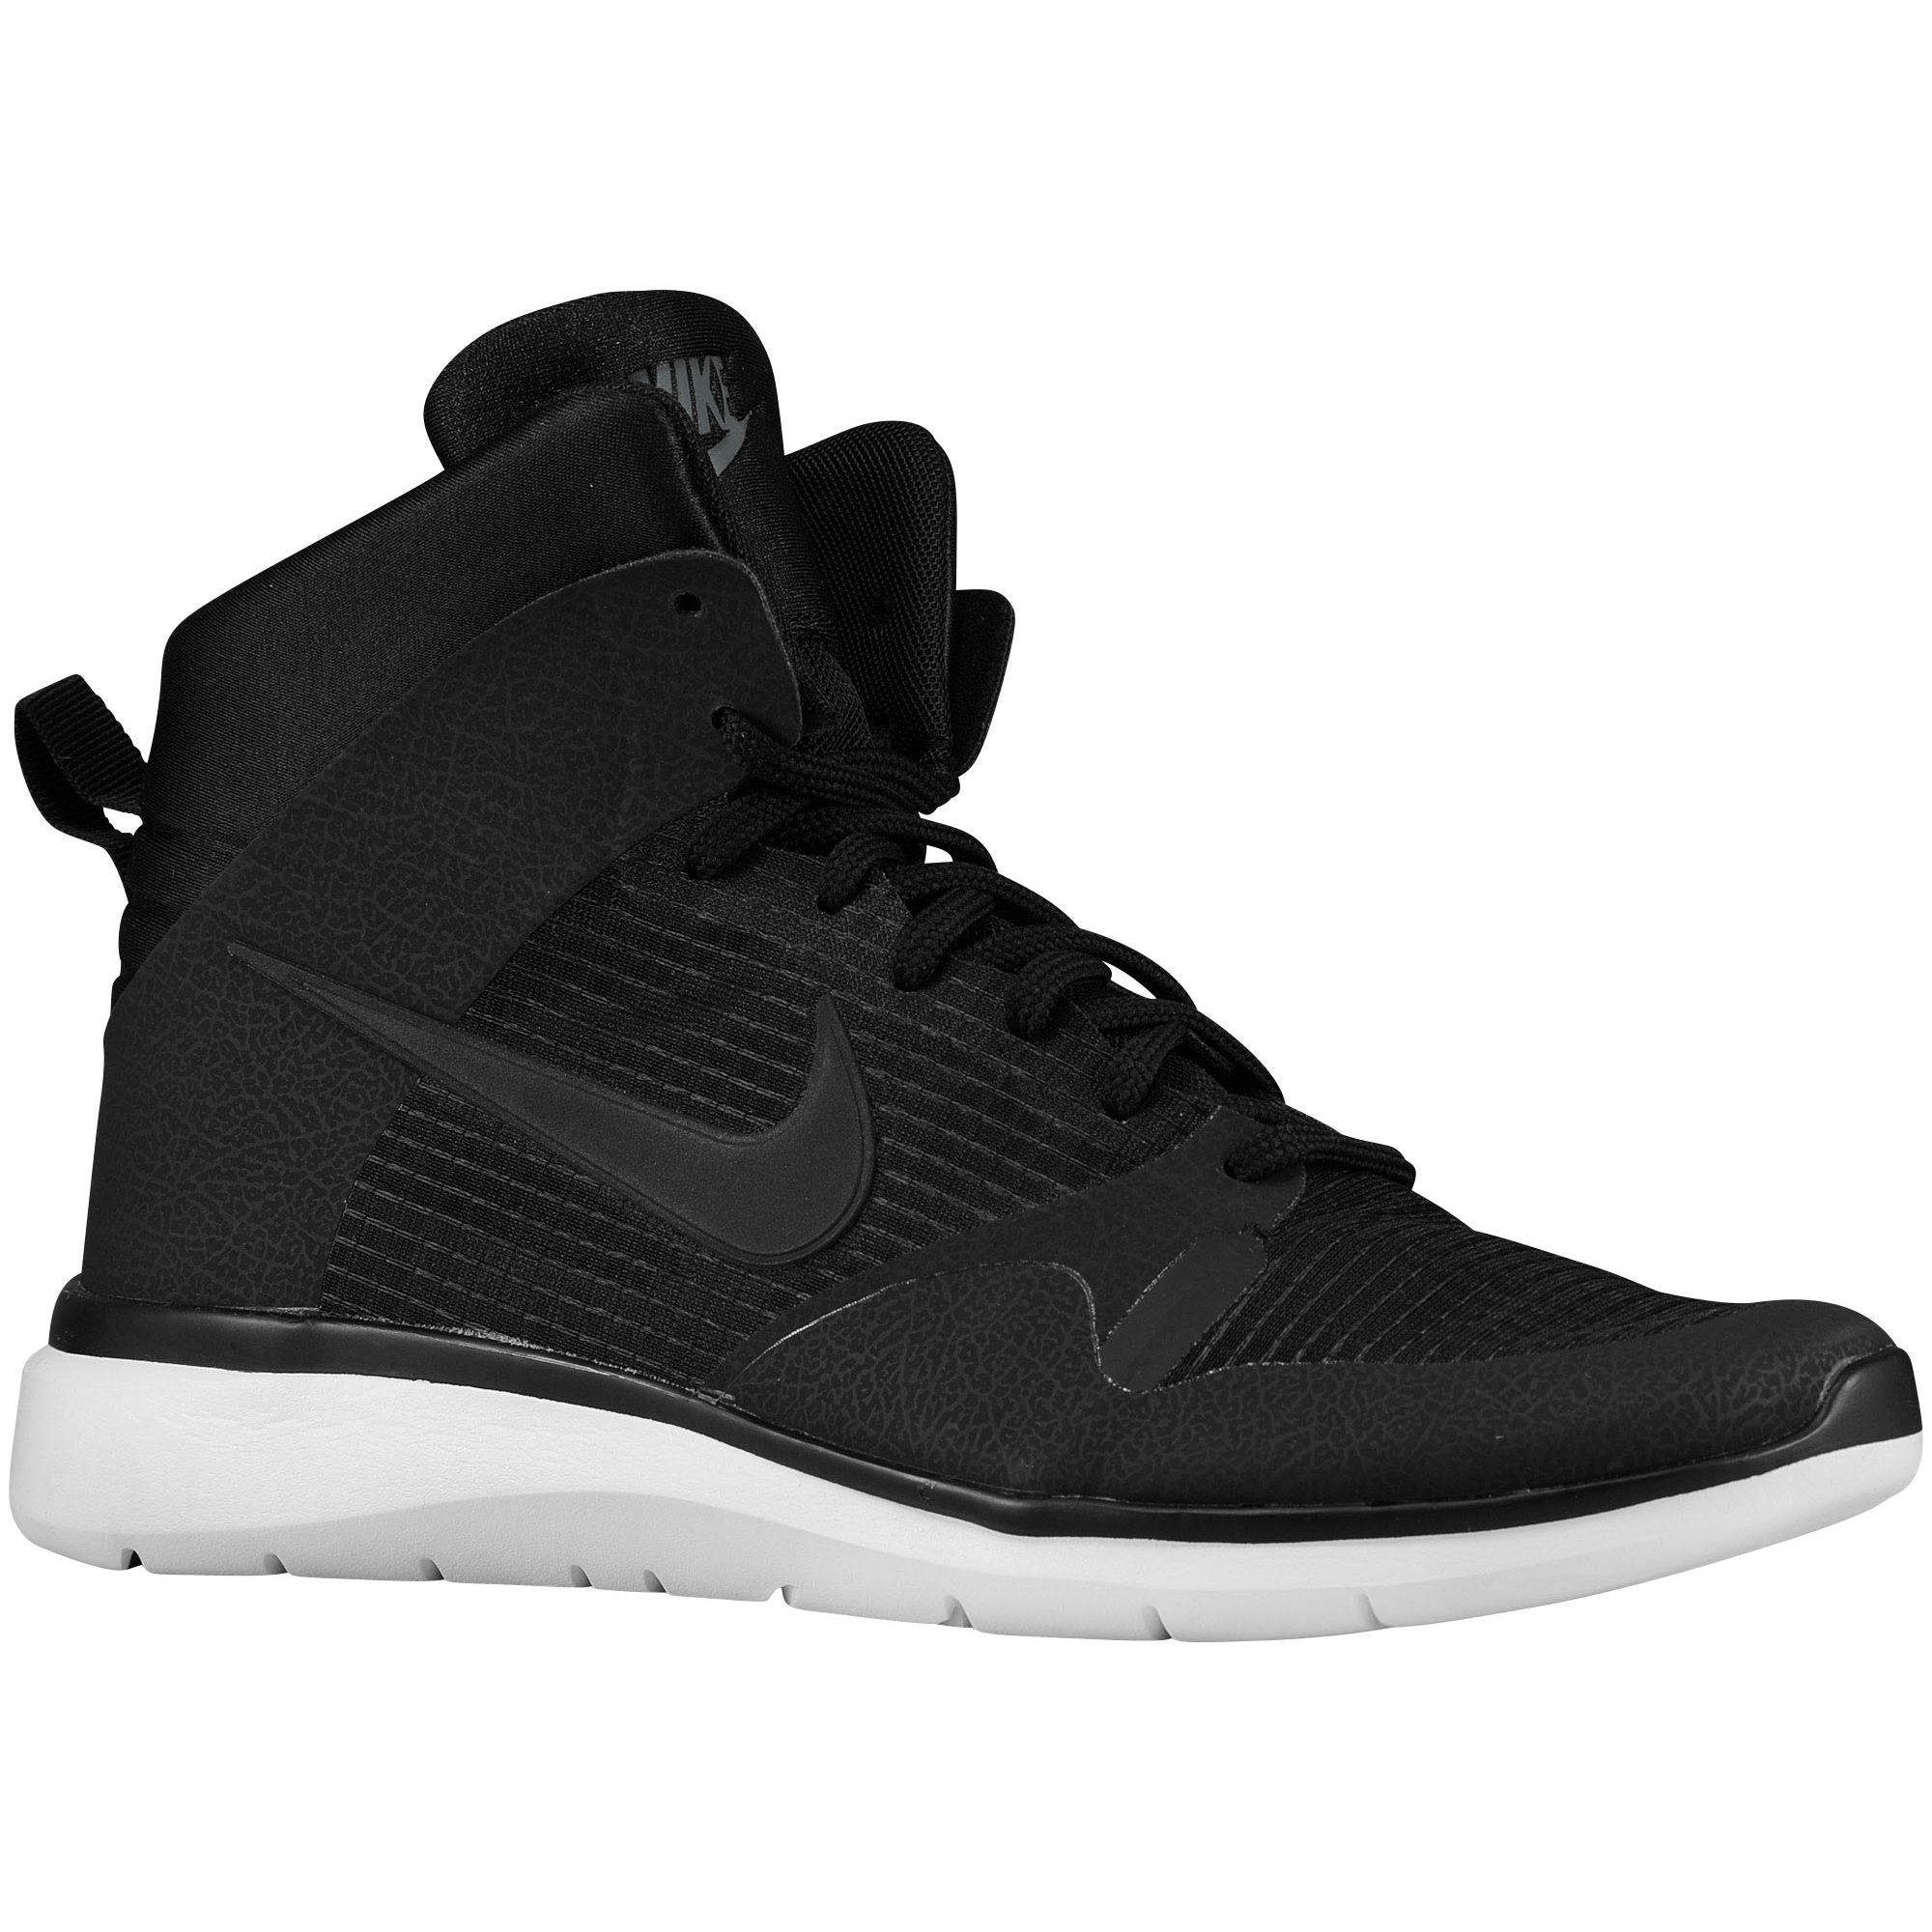 Nike Dunk Ultra Modern - Women's - Basketball - Shoes - Black/Dark Grey/White/Black